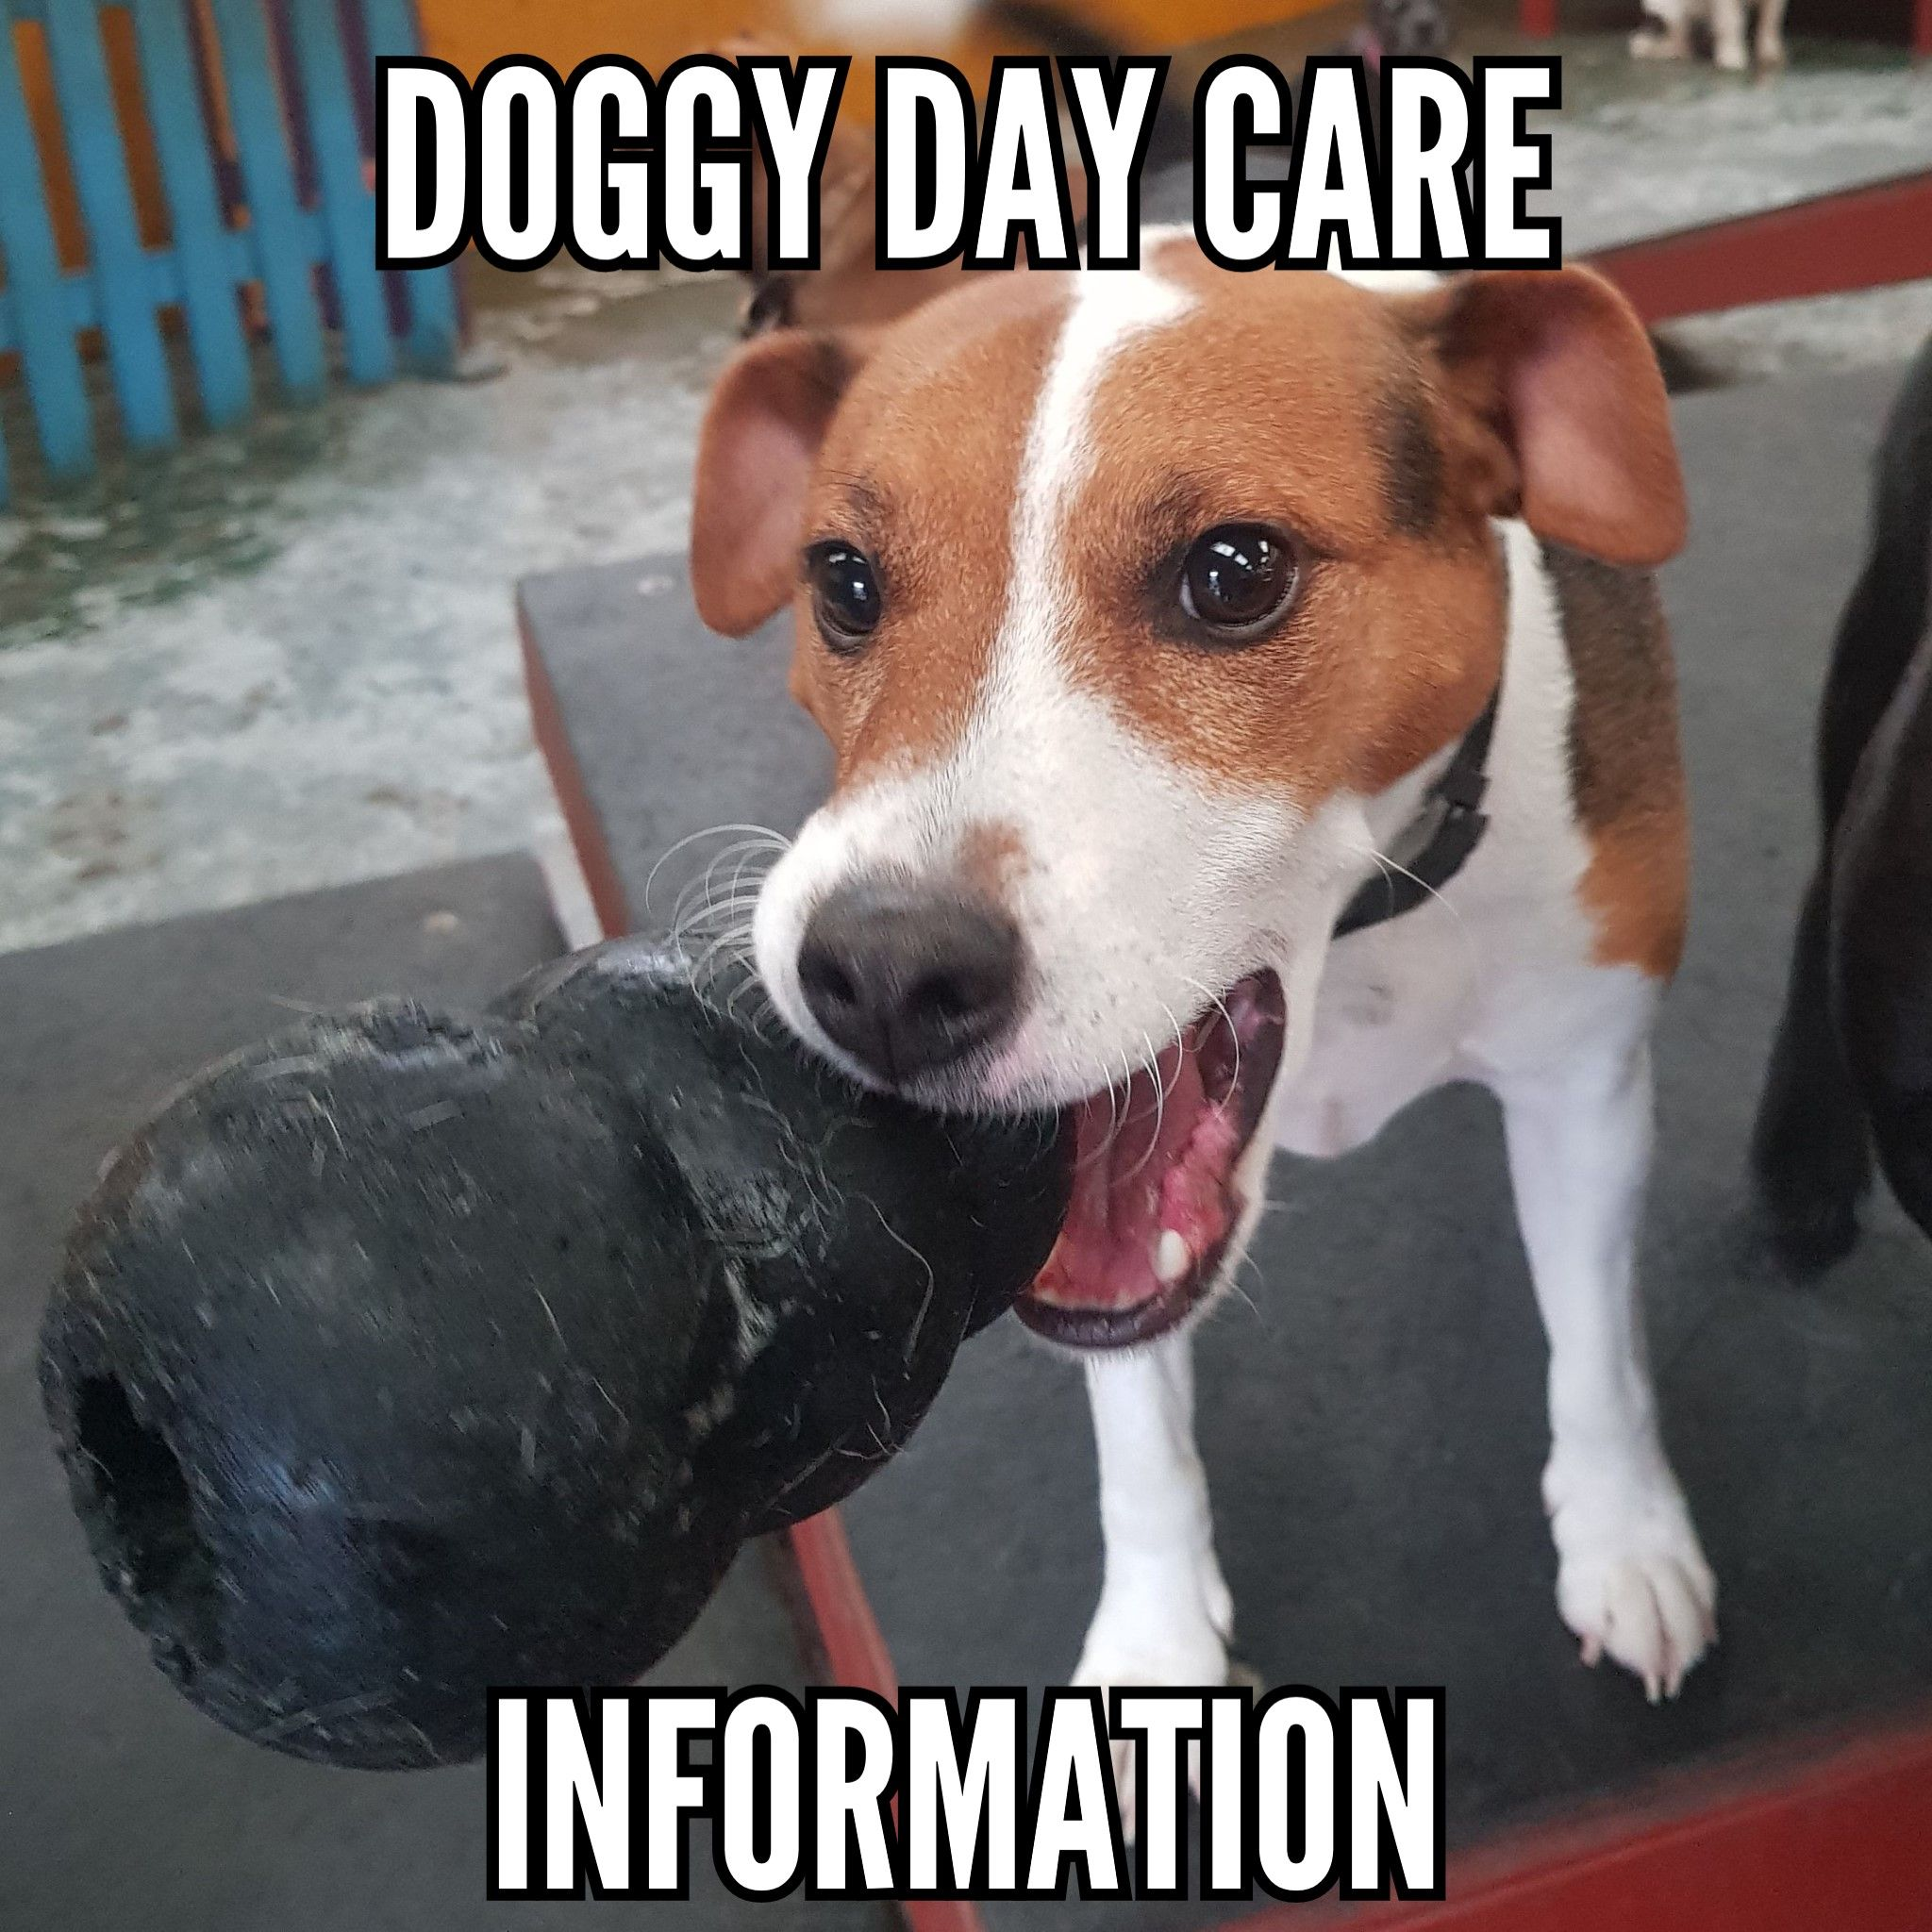 information on our doggy day care services at scoobys doggy day care northampton, a great alternative to dog walking, dog sitting or kennels